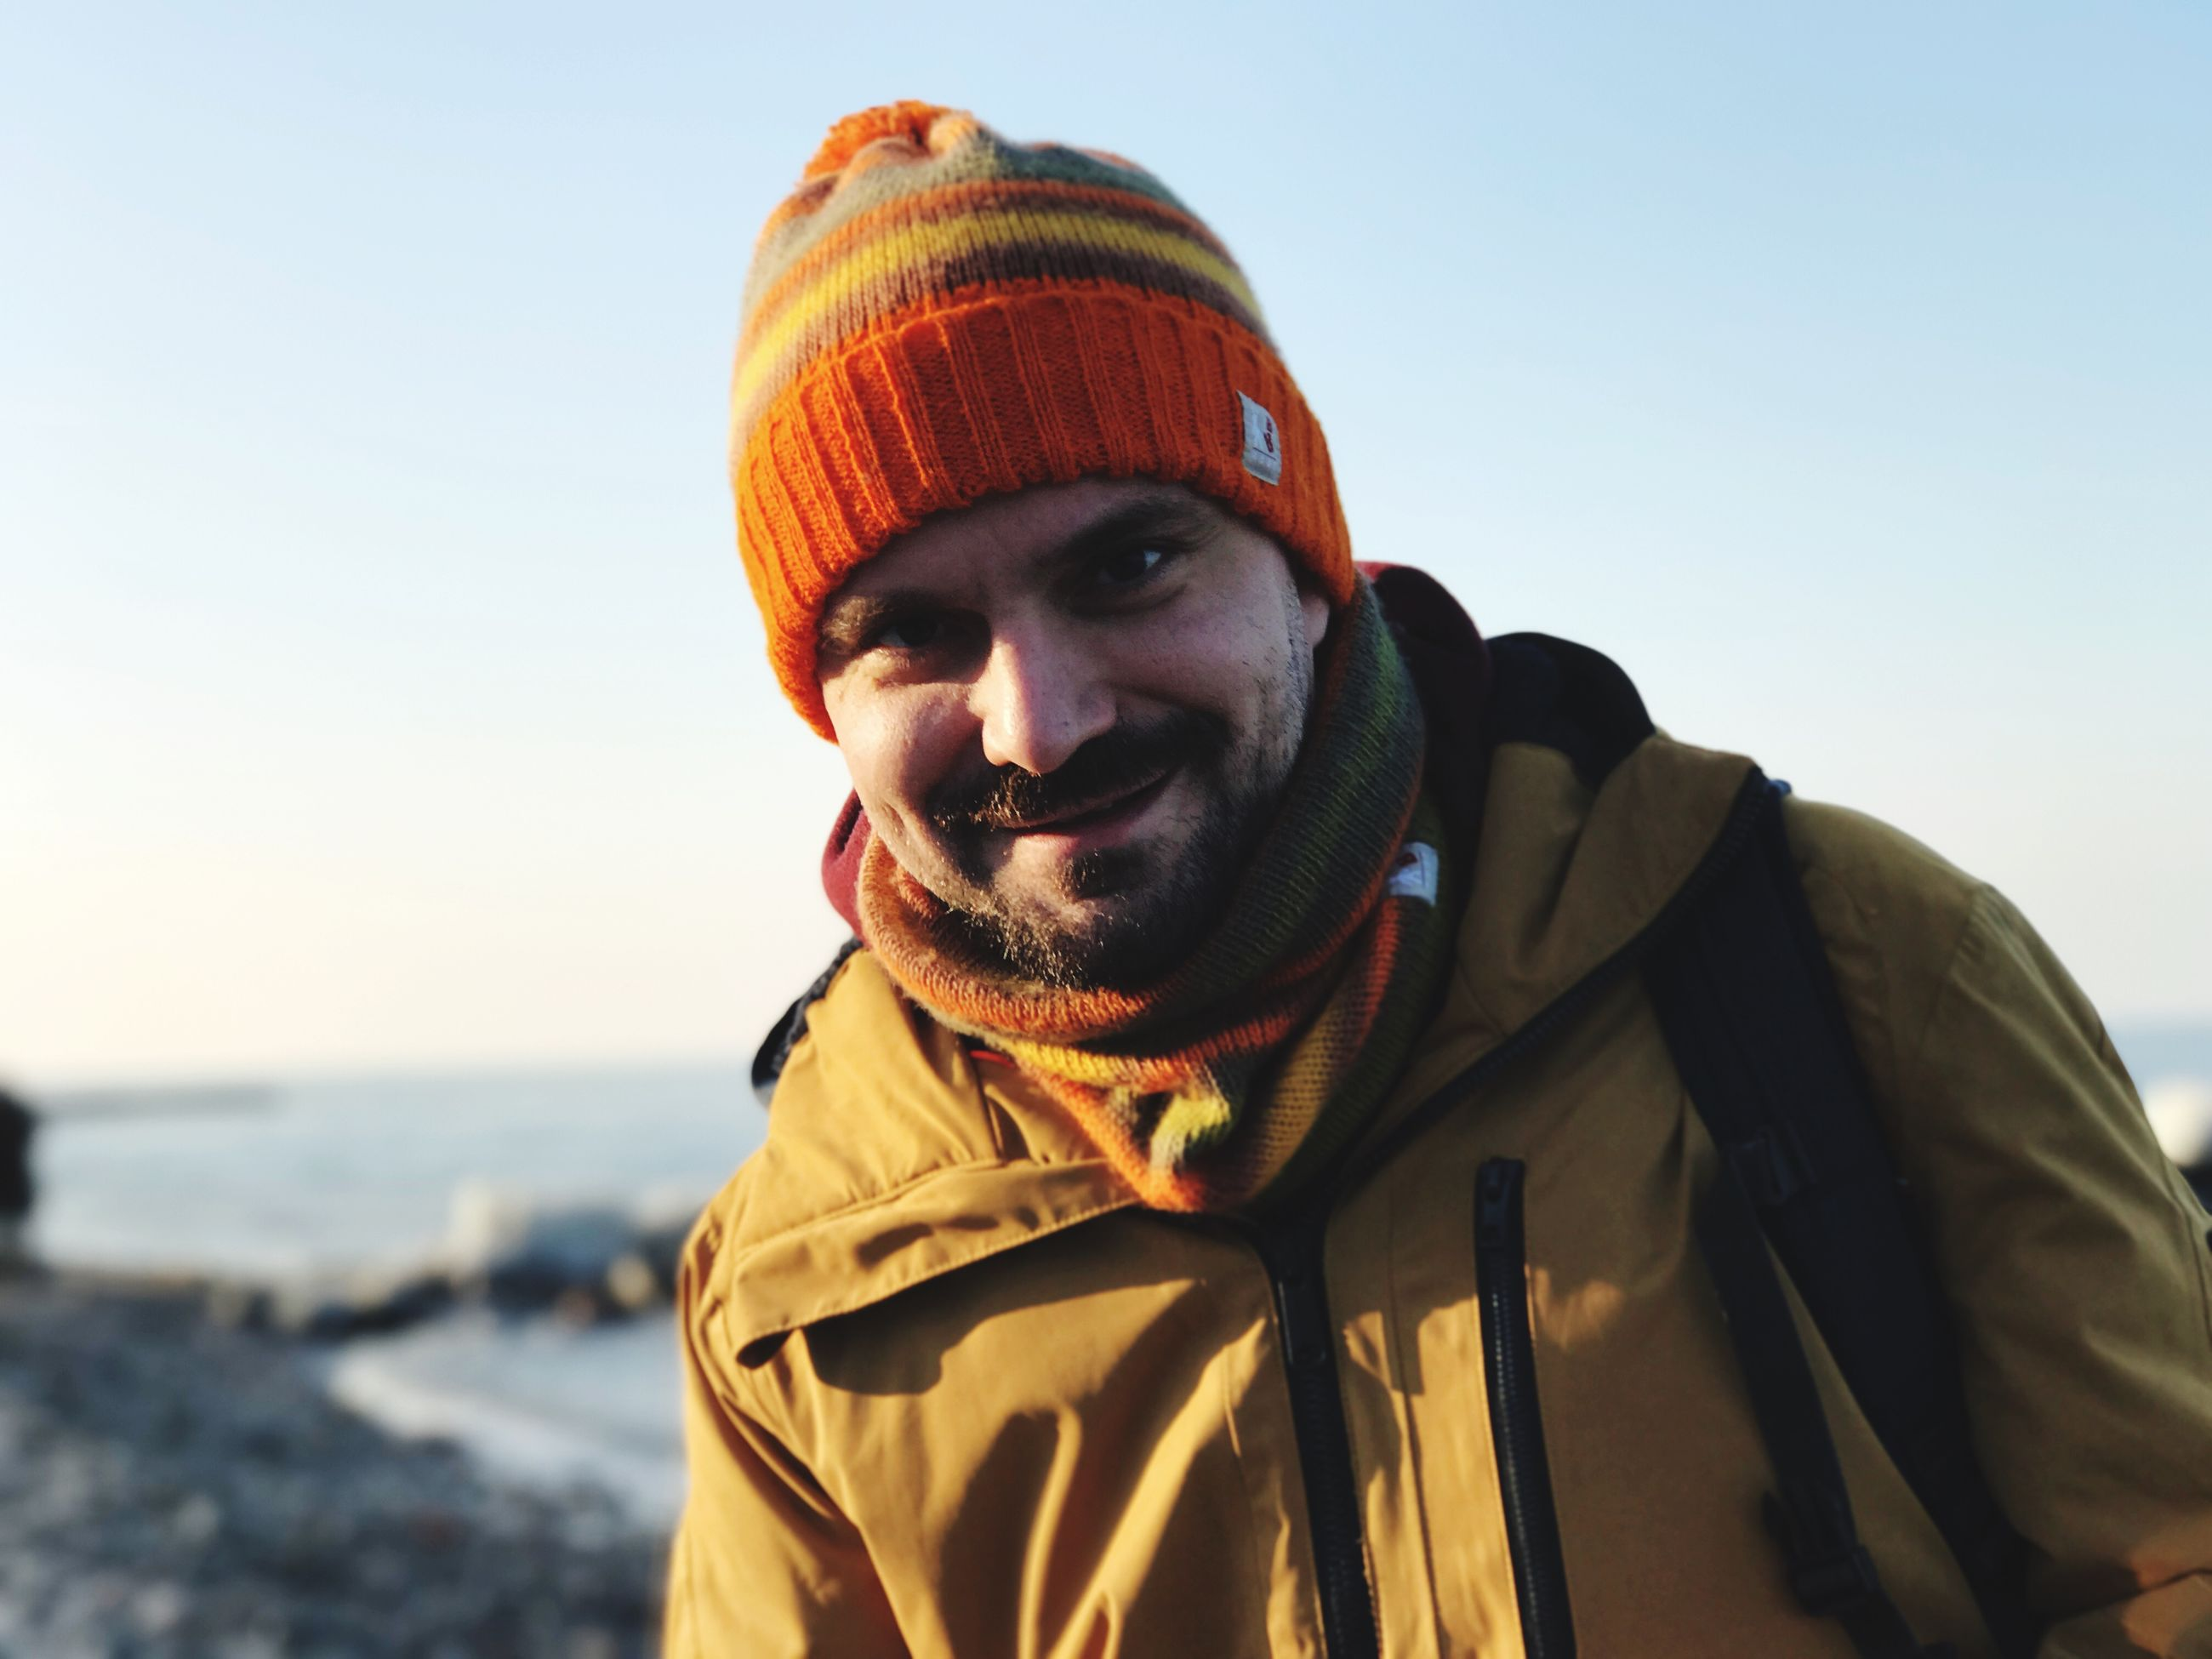 clothing, portrait, smiling, one person, looking at camera, warm clothing, winter, leisure activity, hat, real people, men, lifestyles, sky, knit hat, headshot, happiness, facial hair, nature, outdoors, scarf